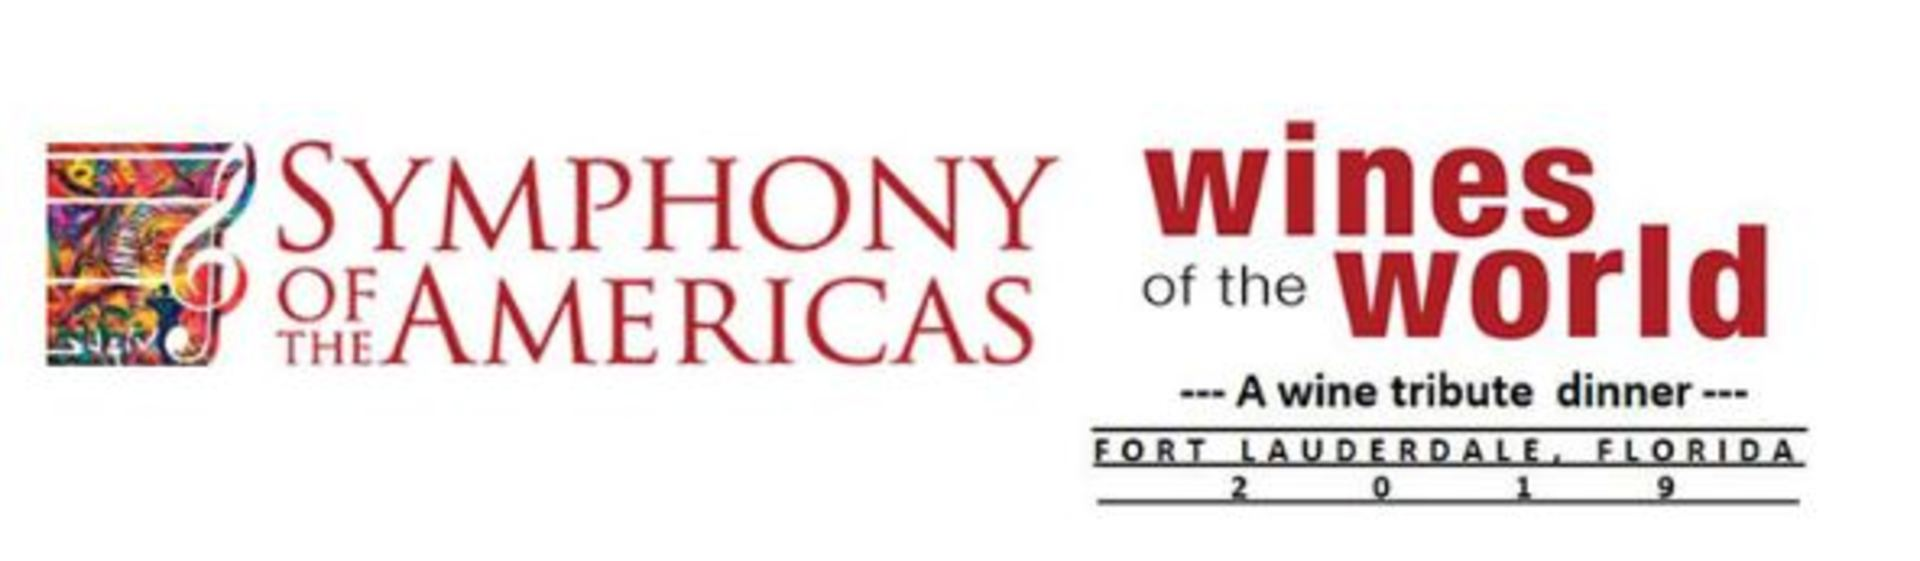 Symphony of the Americas Wines of the World 2019: Tribute Dinner Honoring Toni Lampasone & Wine Watch